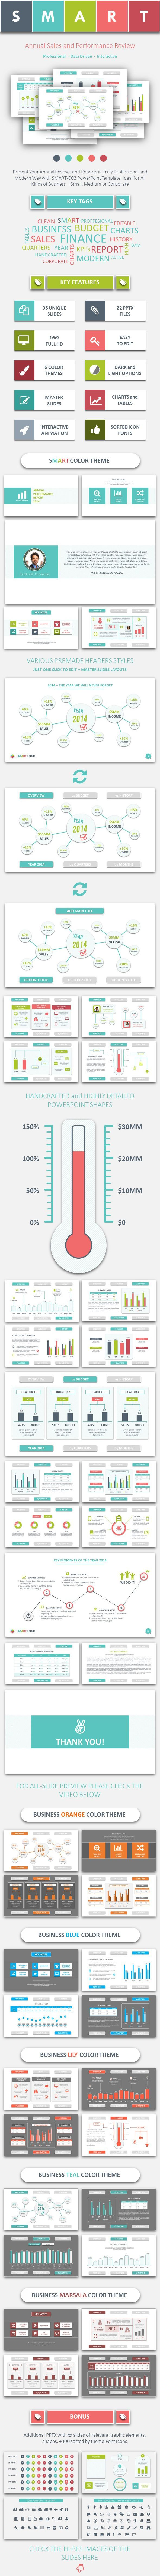 SMART-003 – Annual Review PowerPoint Template - Finance PowerPoint ...